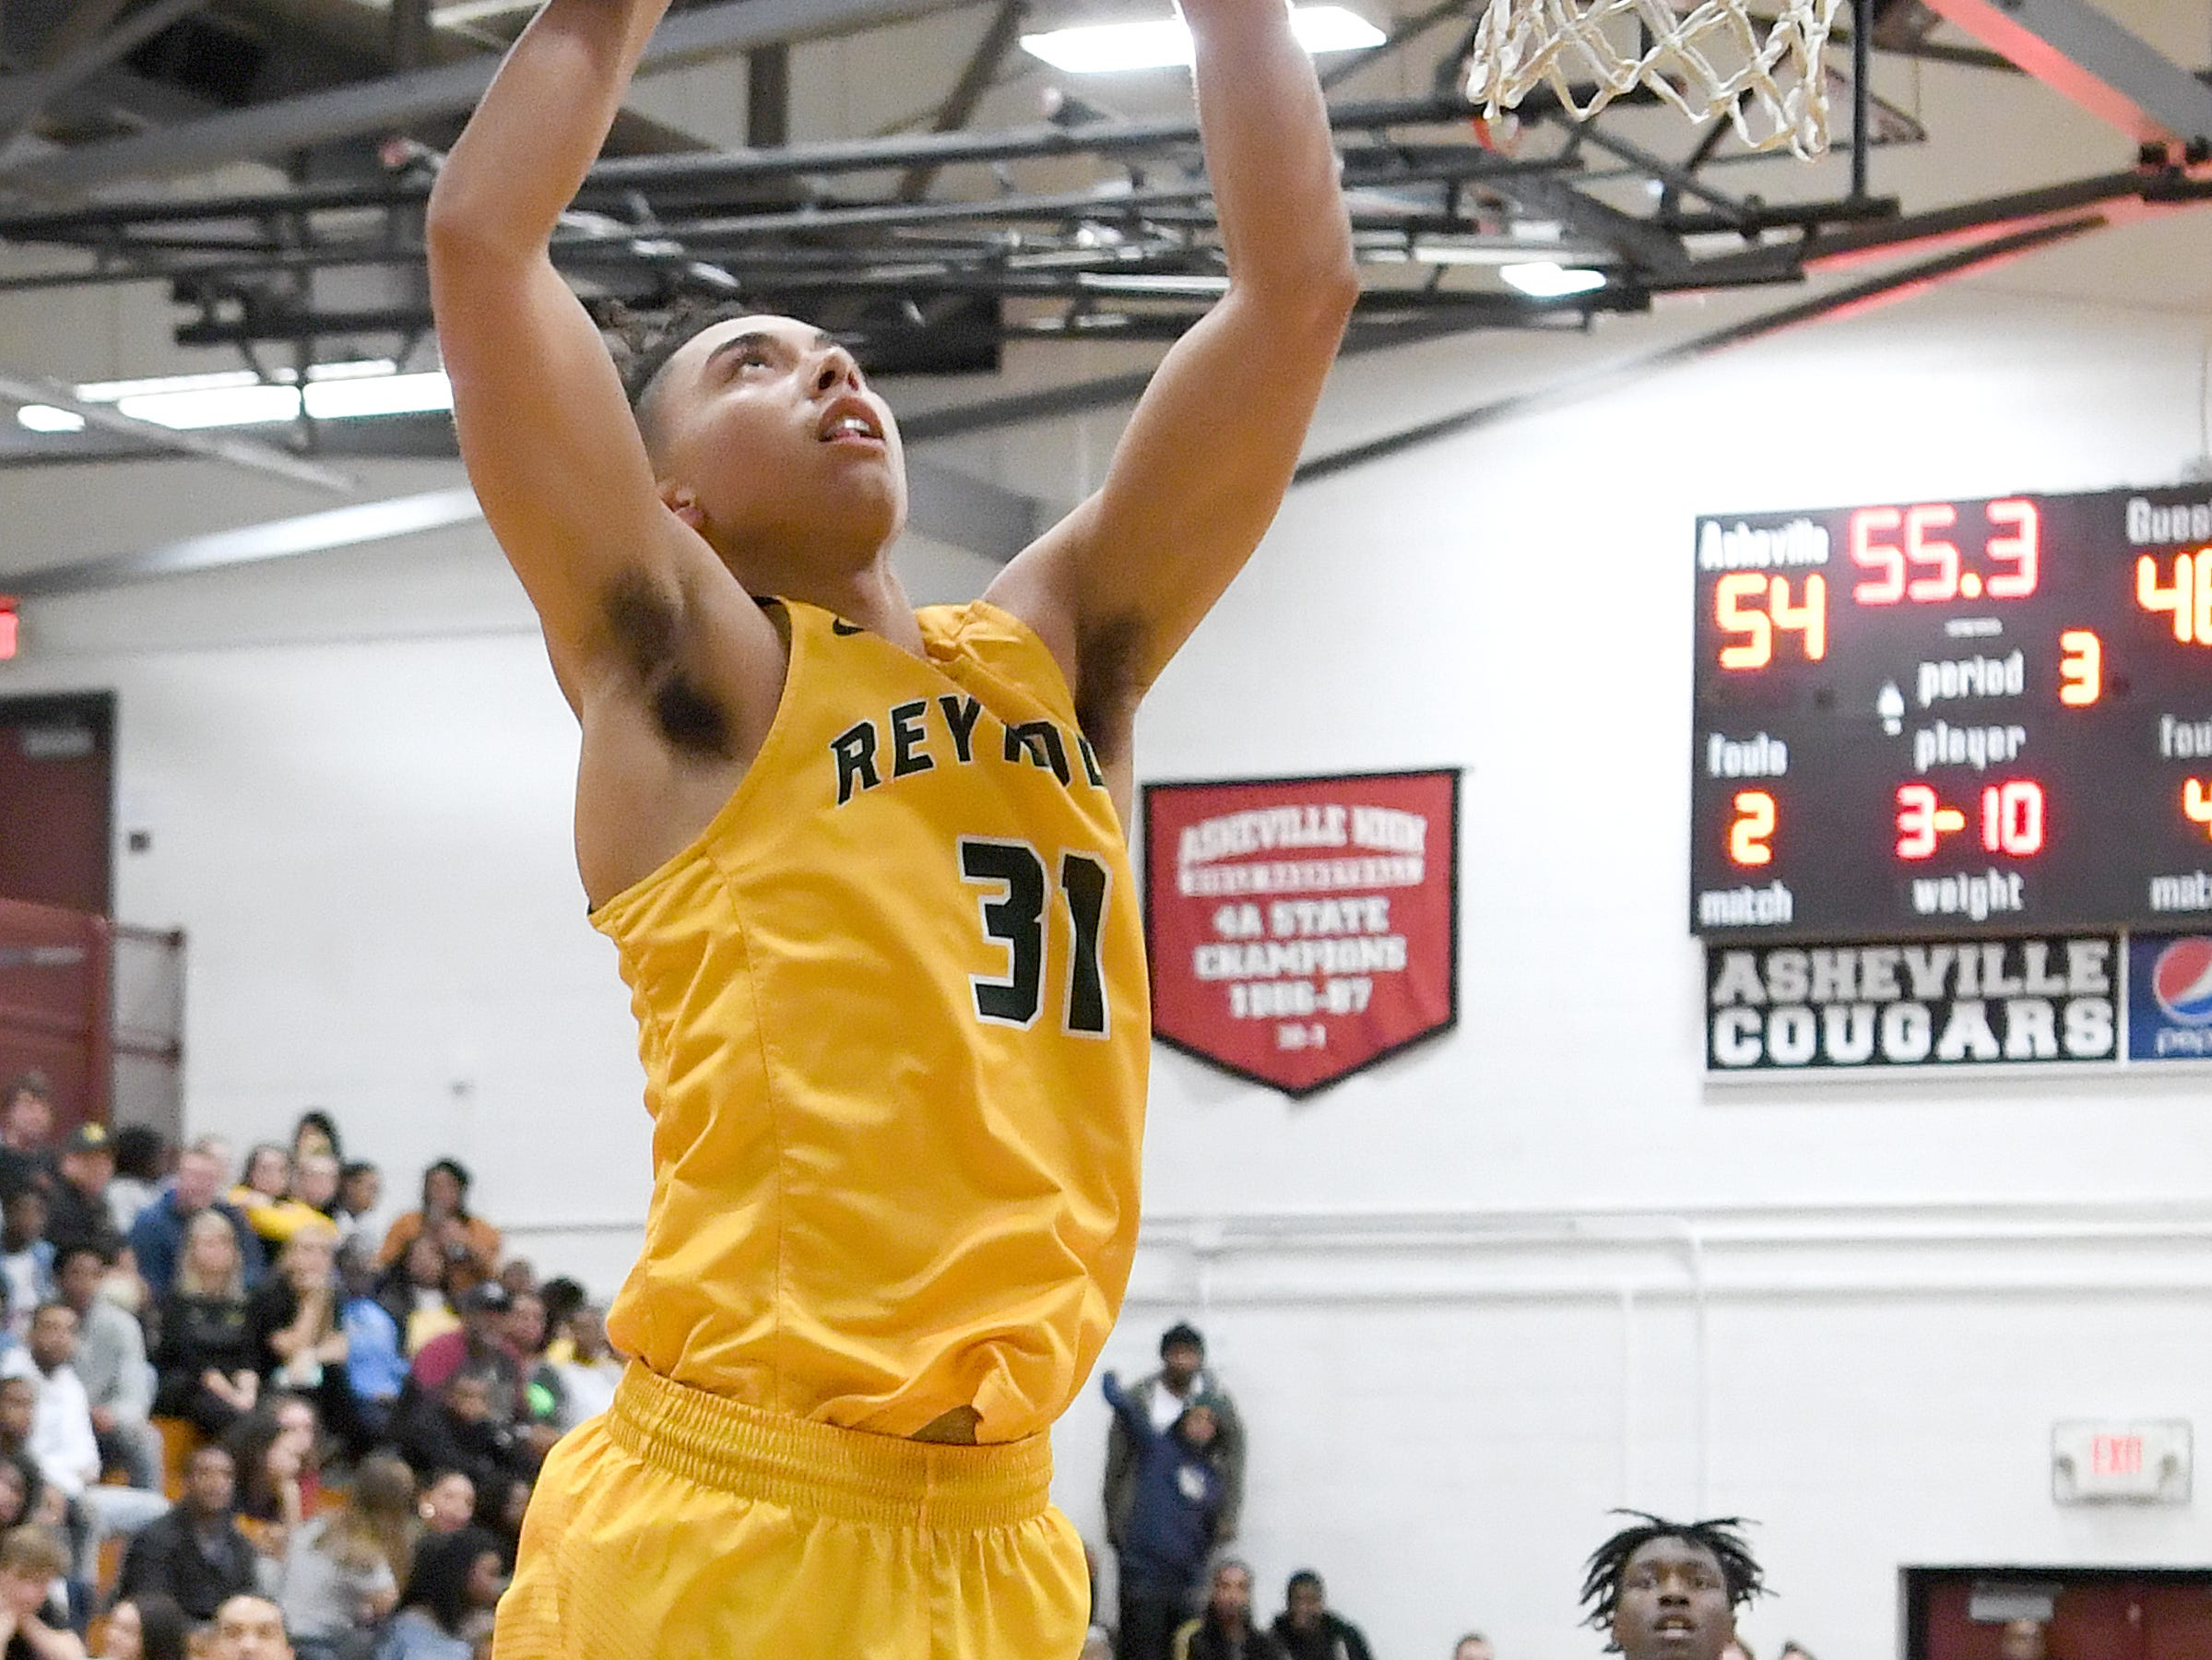 Reynolds' Jeremiah Dorsey makes a shot during the Rockets' game at Asheville High School on Jan. 4, 2019. The Cougars defeated the Rockets 78-70.